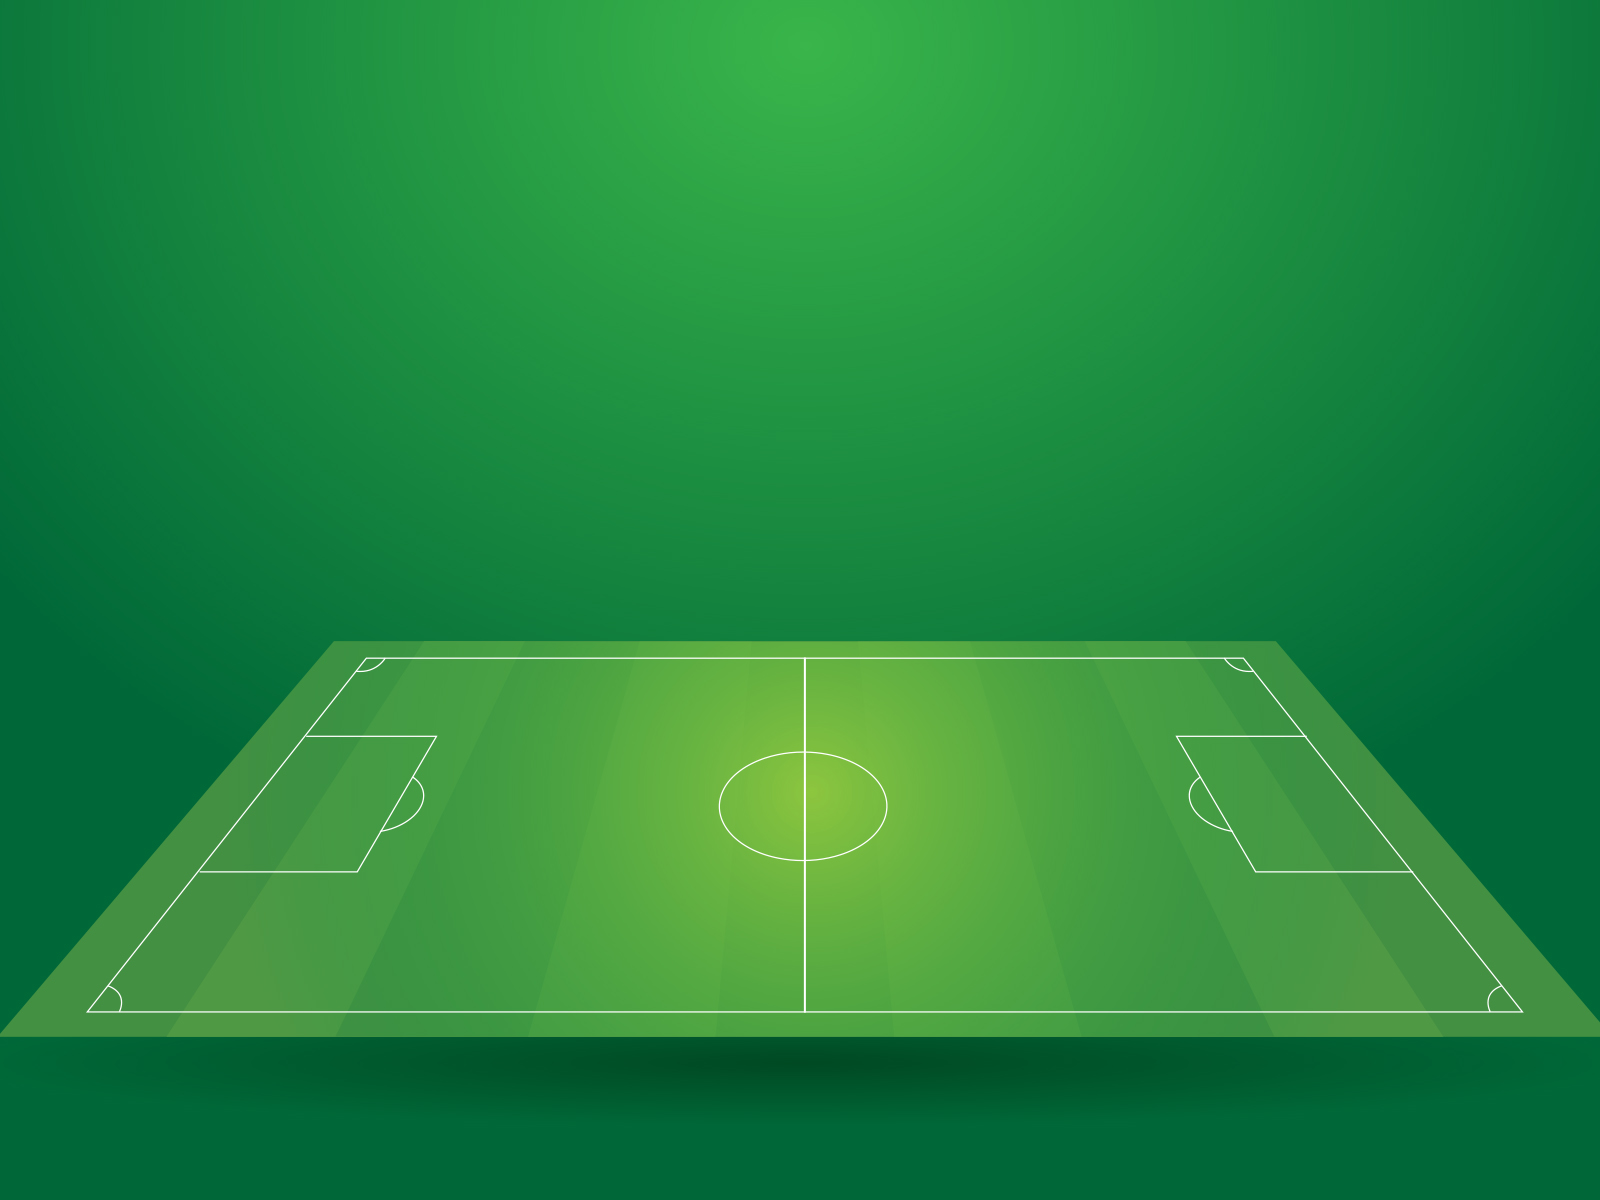 football sport field backgrounds green sports templates